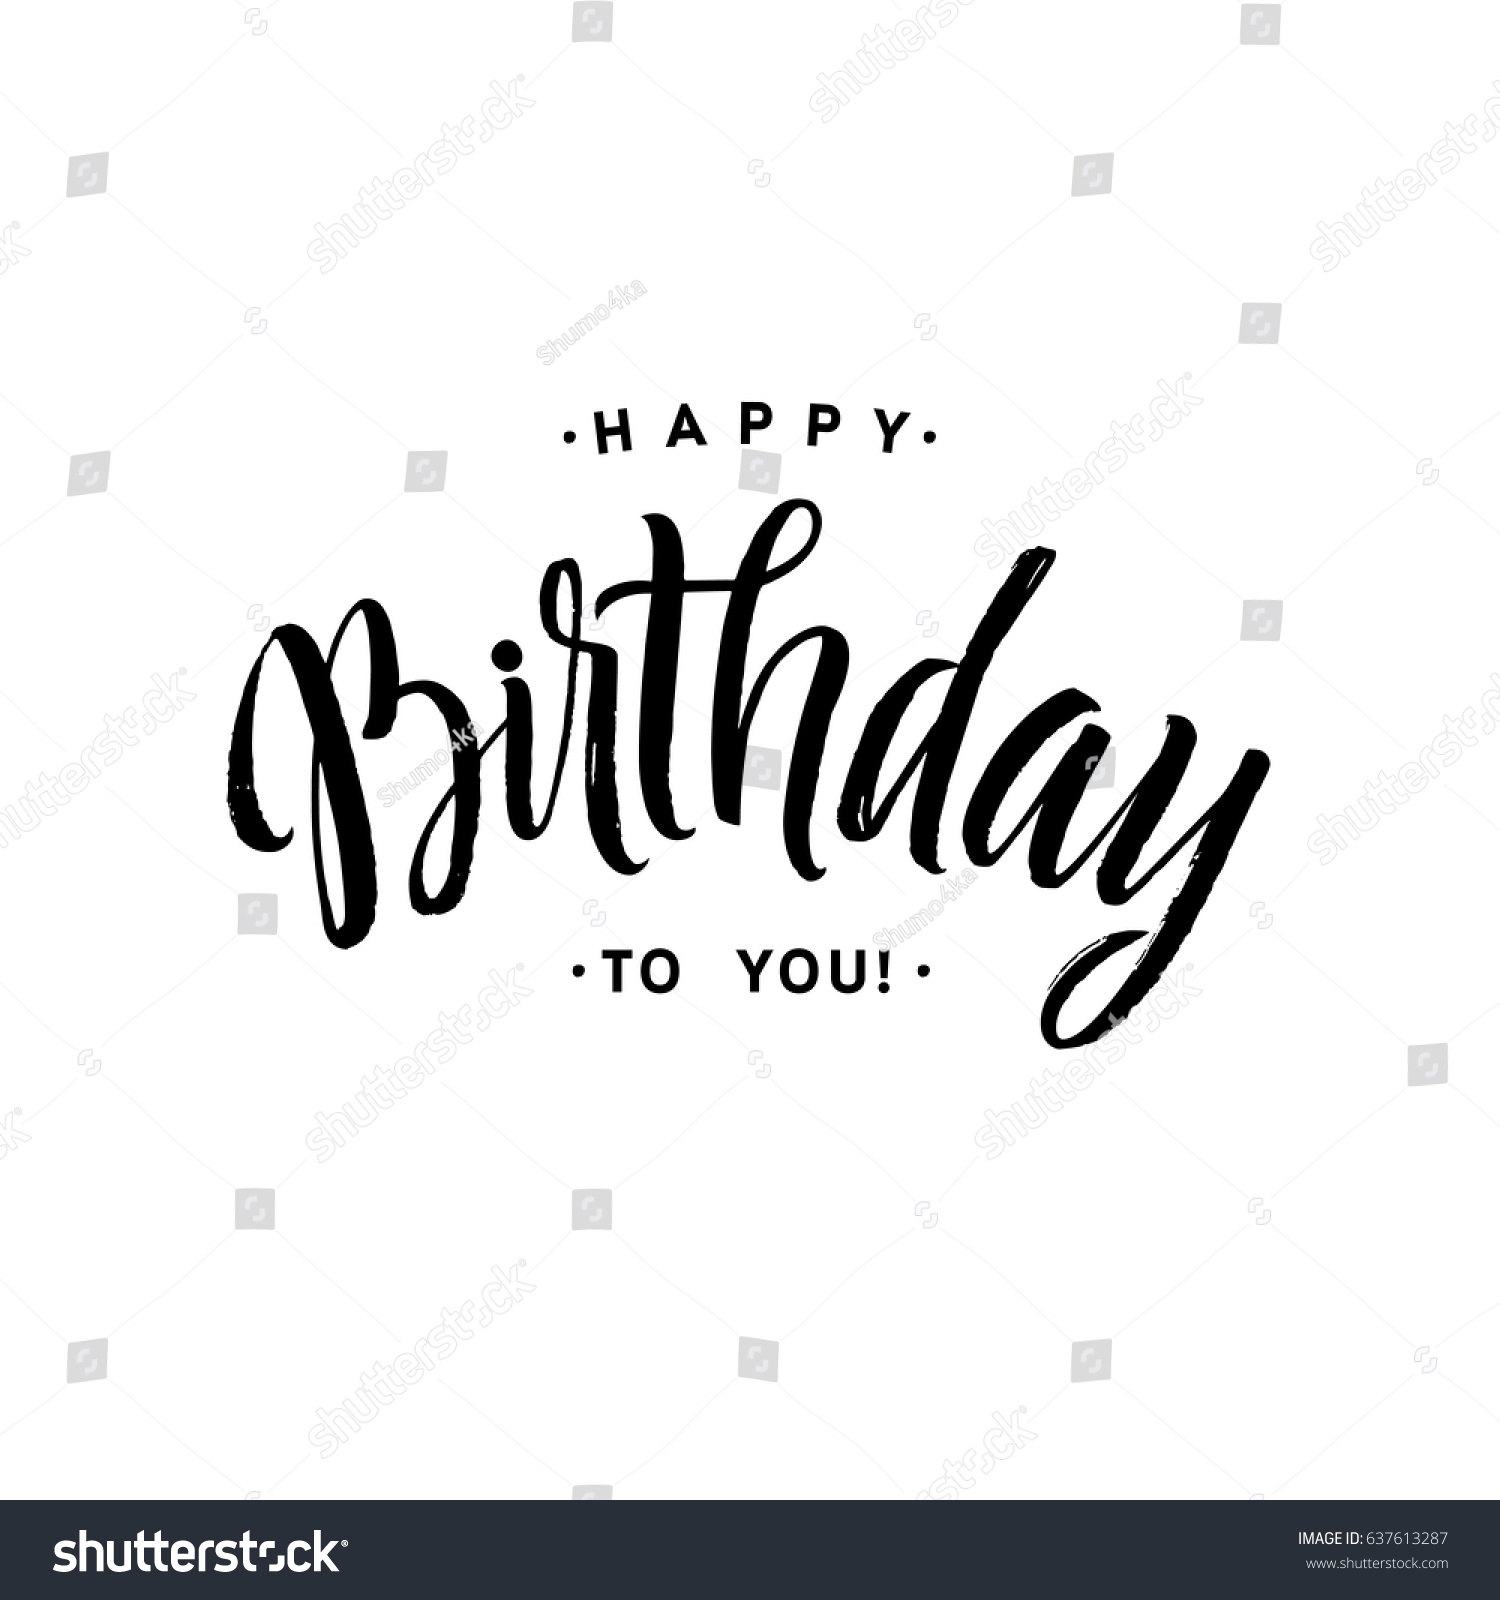 100 Happy Birthday To You Greeting Wishes Qutoes